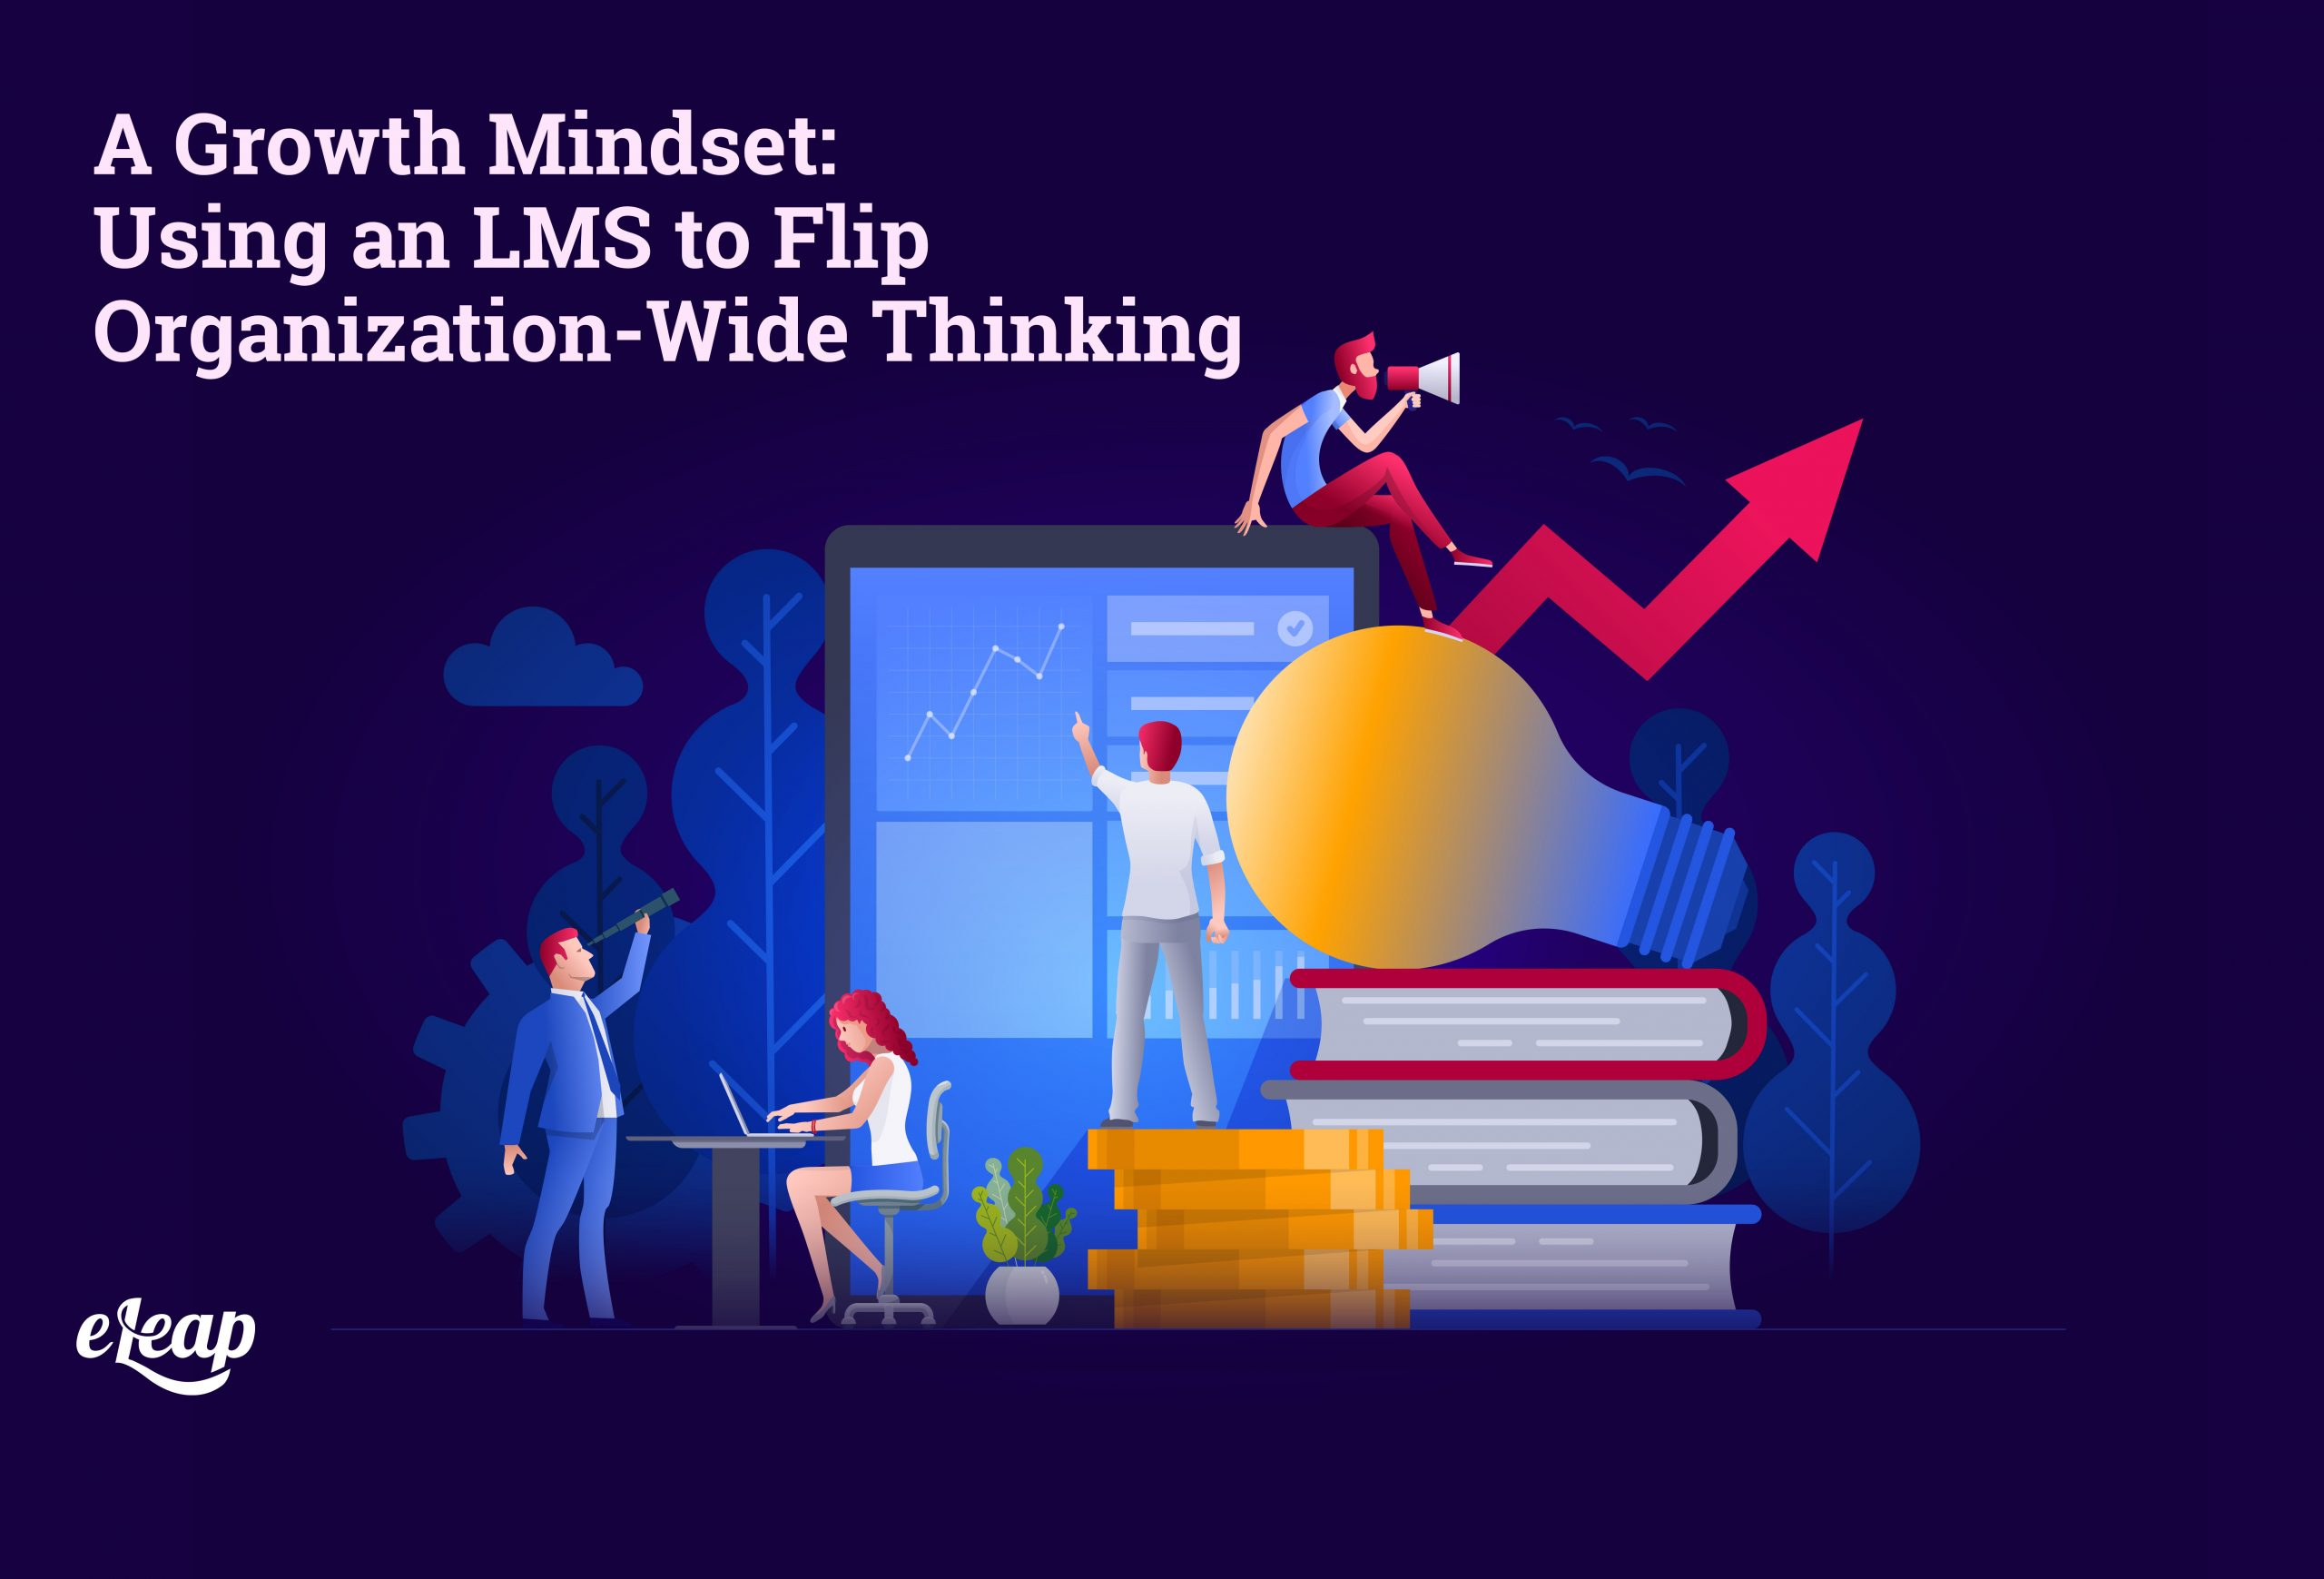 A Growth Mindset: Using an LMS to Flip Organization-Wide Thinking